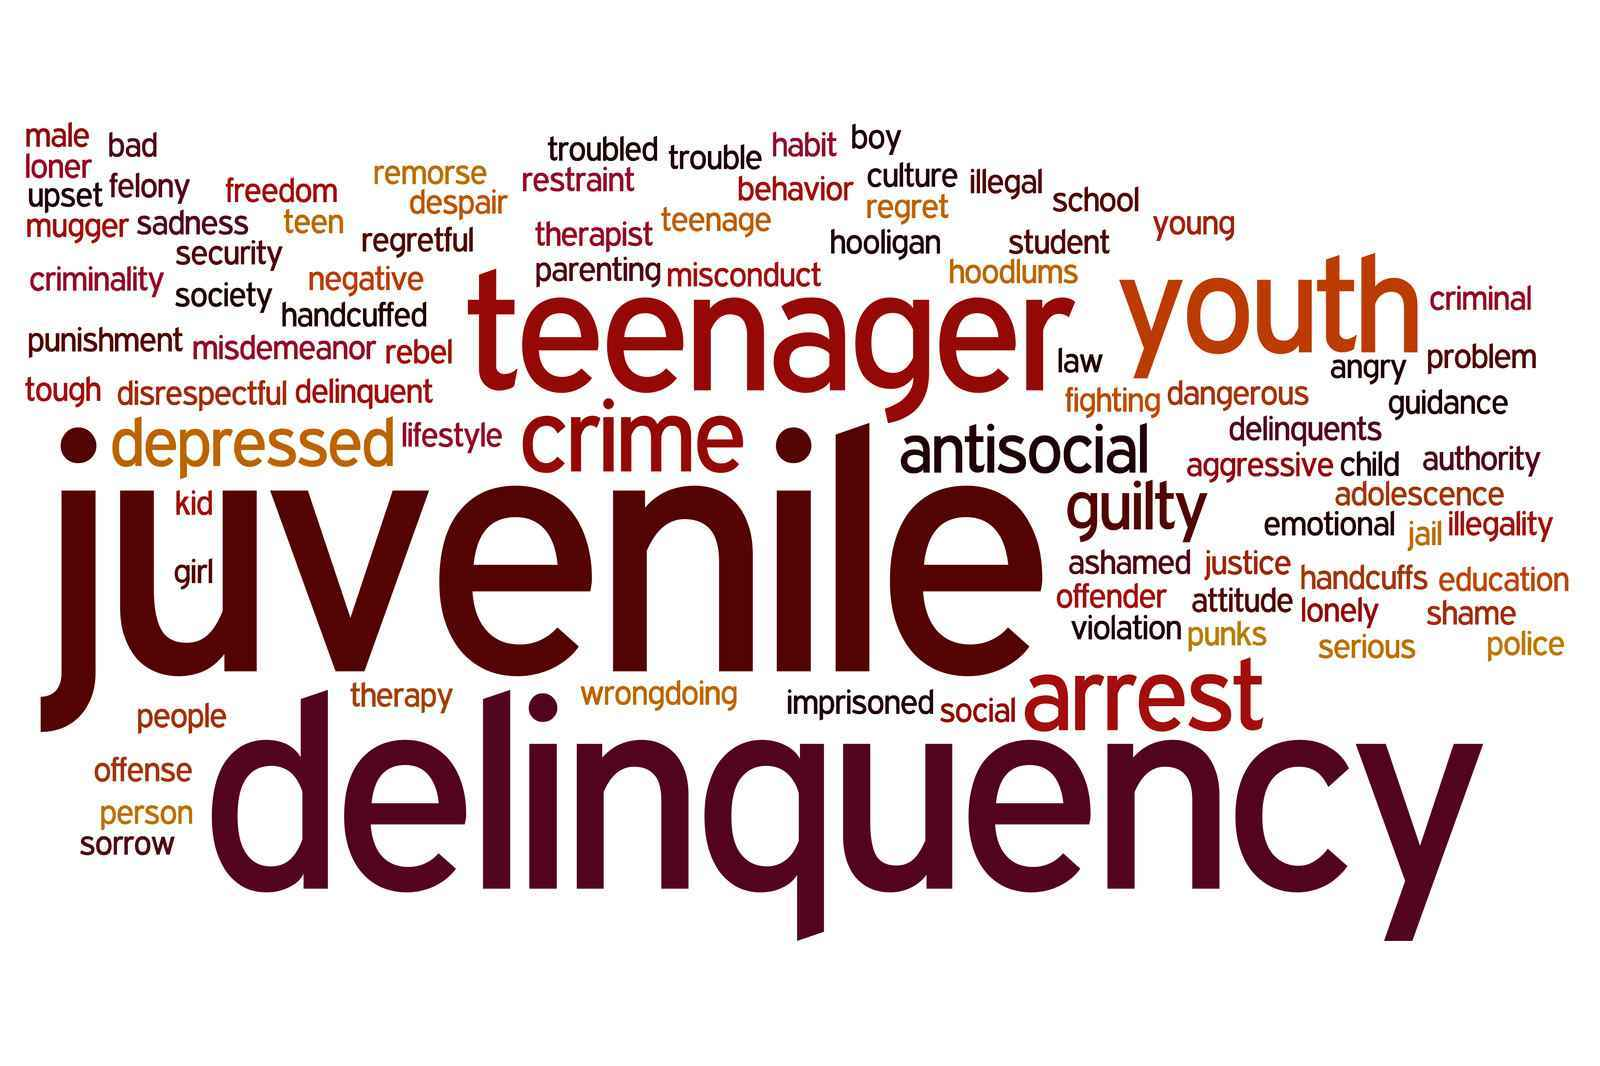 "an analysis of crimes committed by young people and juvenile delinquency in the united states Under the fjda, a district court has several sentencing options: ""the court may suspend the findings of juvenile delinquency, enter an order of restitution [ ], place him on probation, or commit him to official detention"" 18 usc § 5037 (2001) 4 the maximum term of ""official detention"" to which a juvenile may be sentenced is the lesser of the."